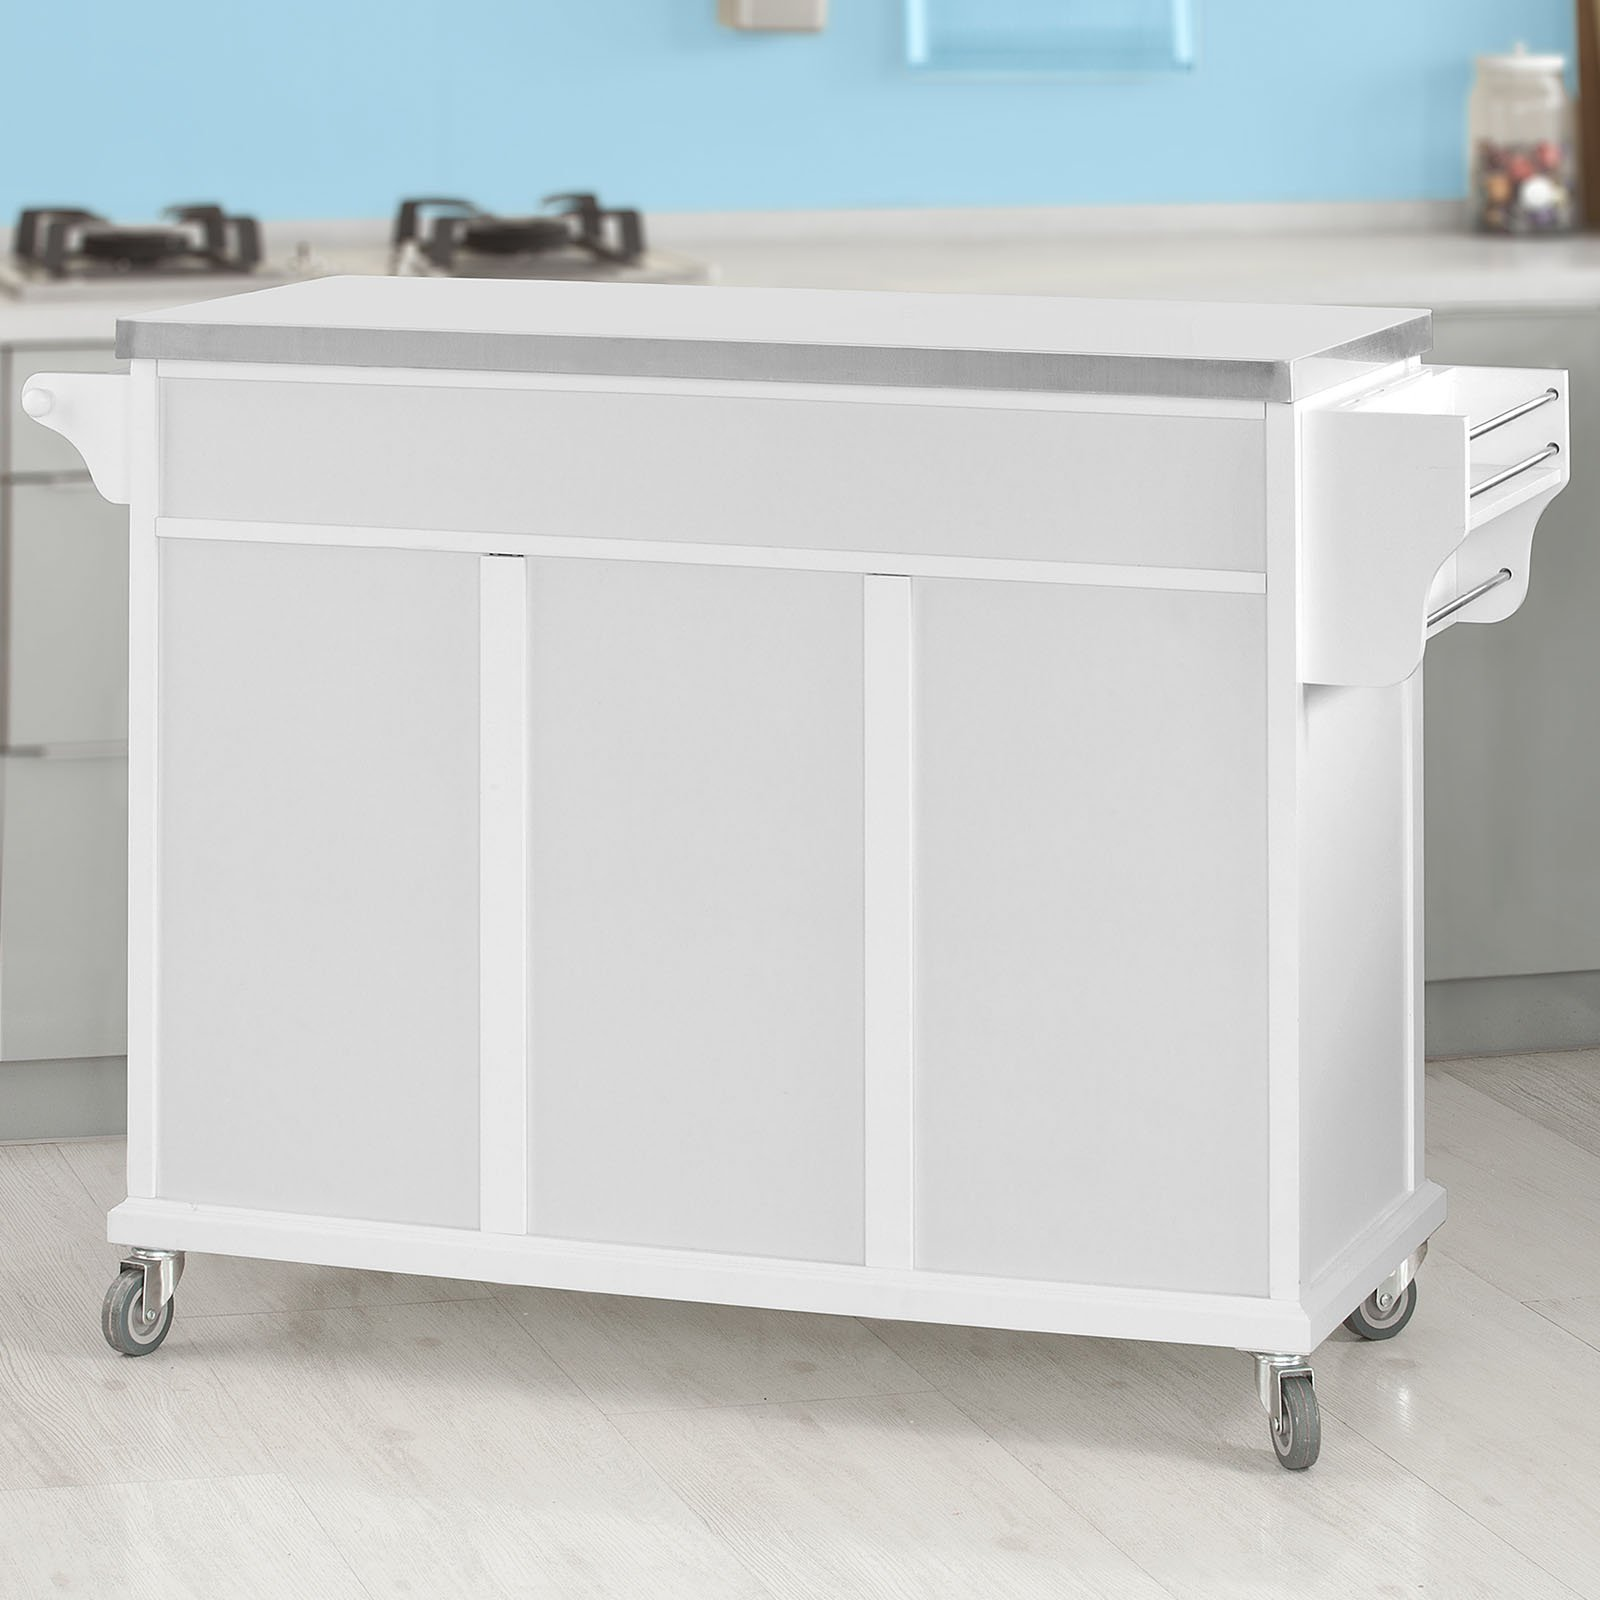 SoBuy?? White Luxury Kitchen Island Storage Trolley Cart, Kitchen Cabinet with Stainless Steel Worktop, FKW33-W by SoBuy by SoBuy (Image #3)